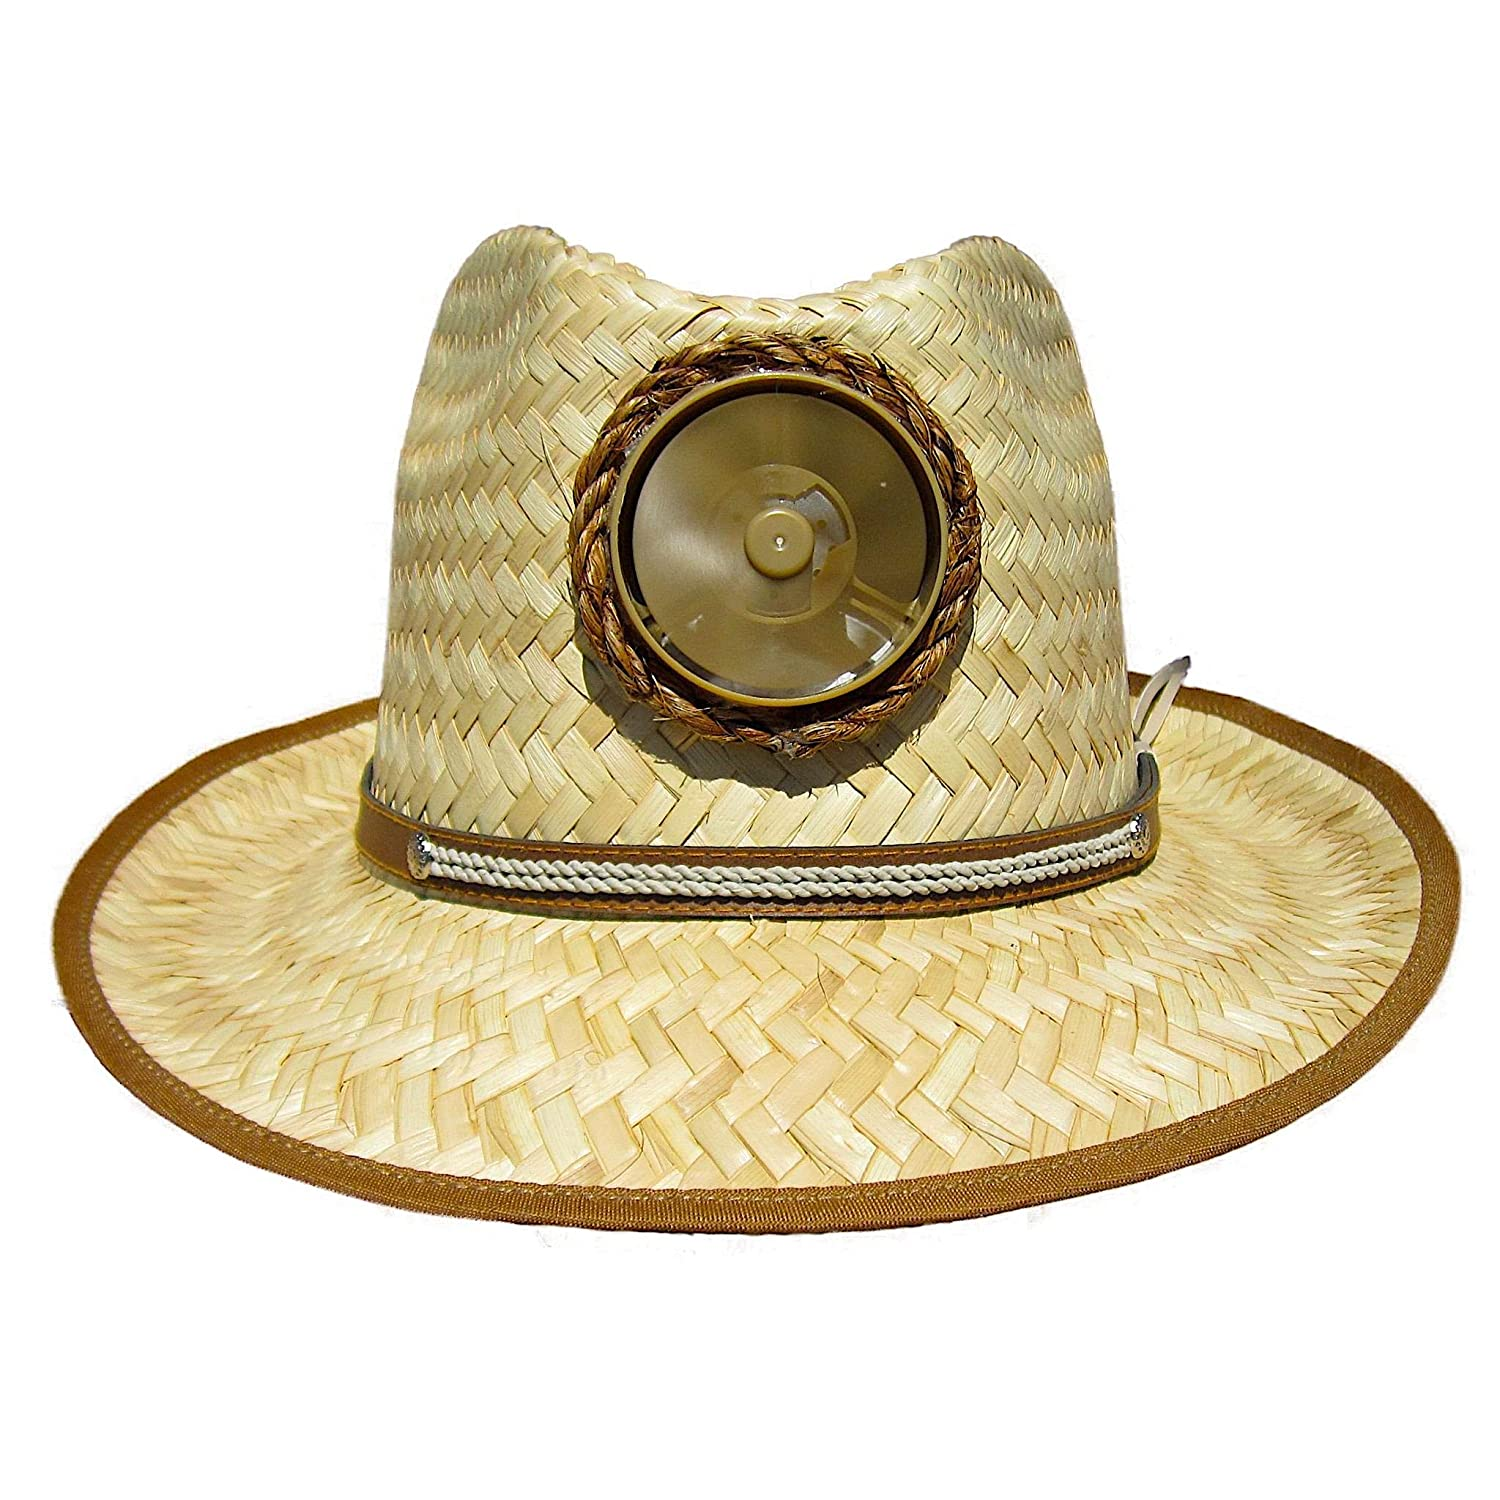 f4d5d521 Amazon.com: Fedora Sun Hat Cooling Solar Powered with Fan Natural Straw  Cool UPF 50+ Protection (Thin Band): Sports & Outdoors